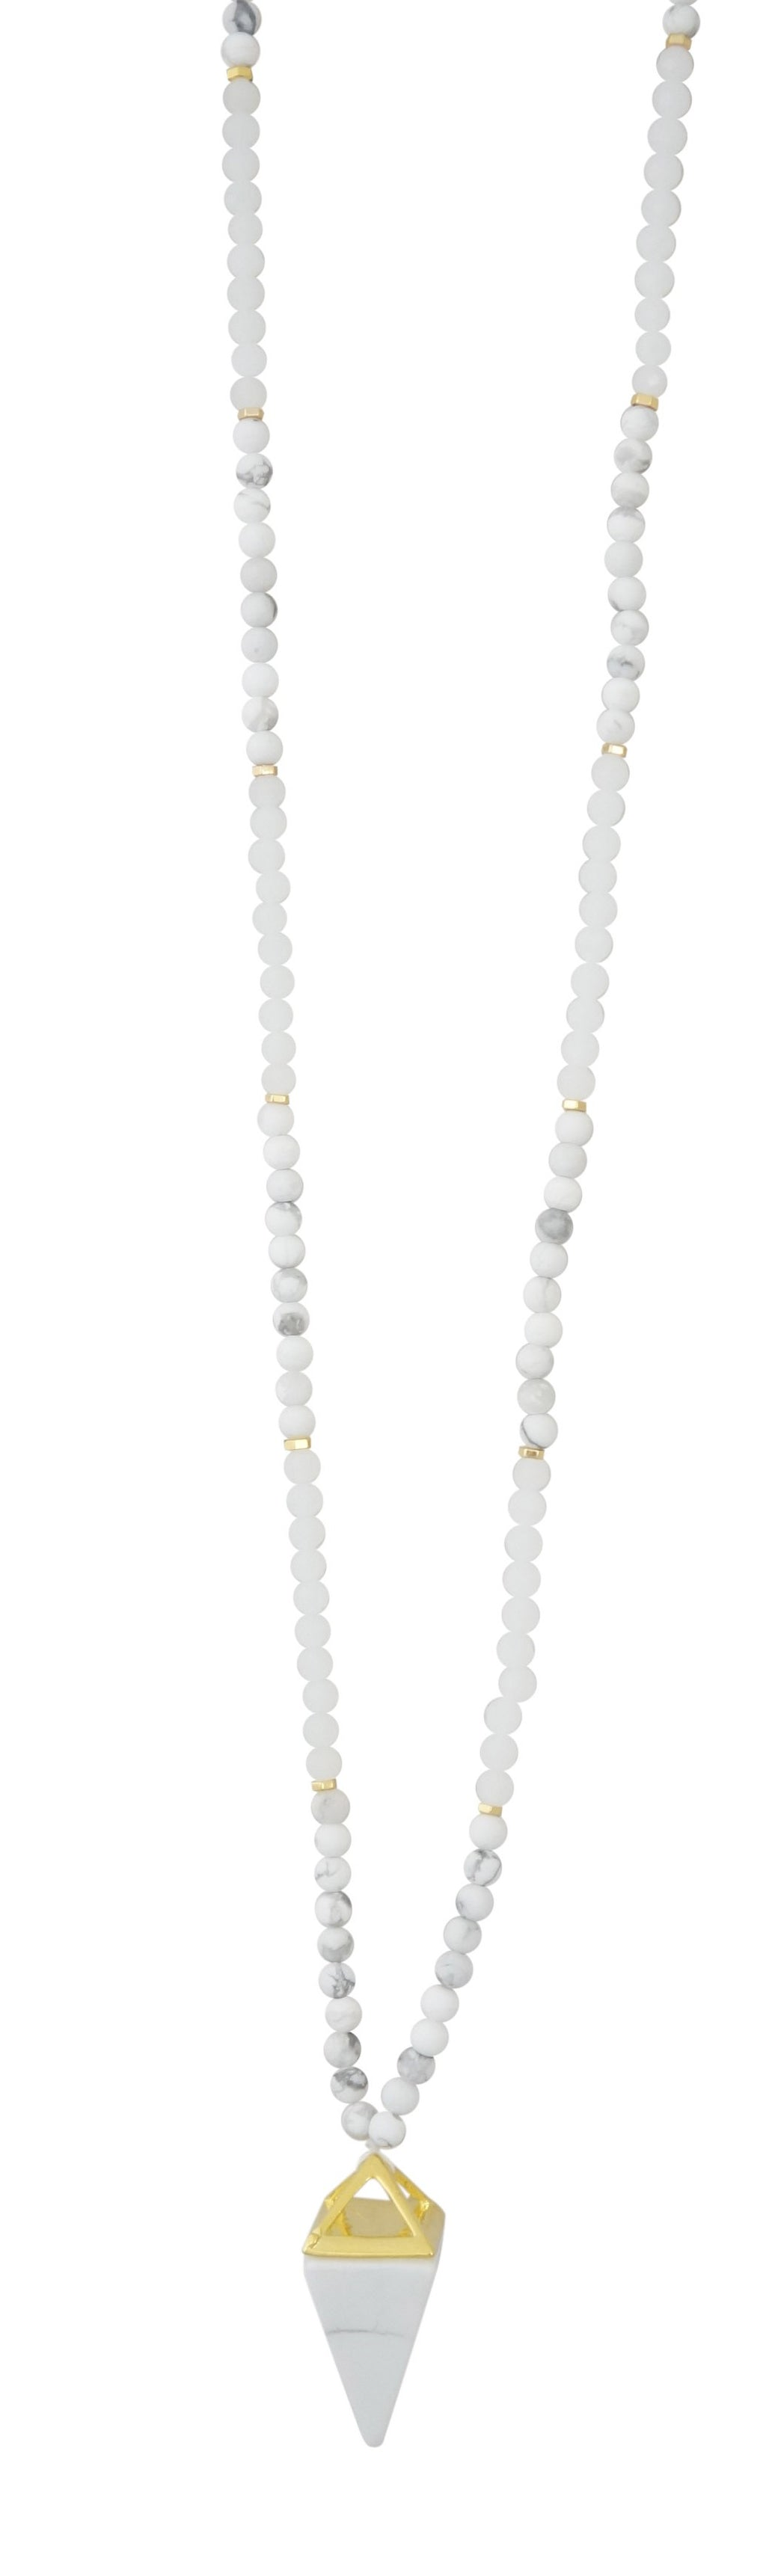 Purity Necklace - Carolyn Hearn Designs